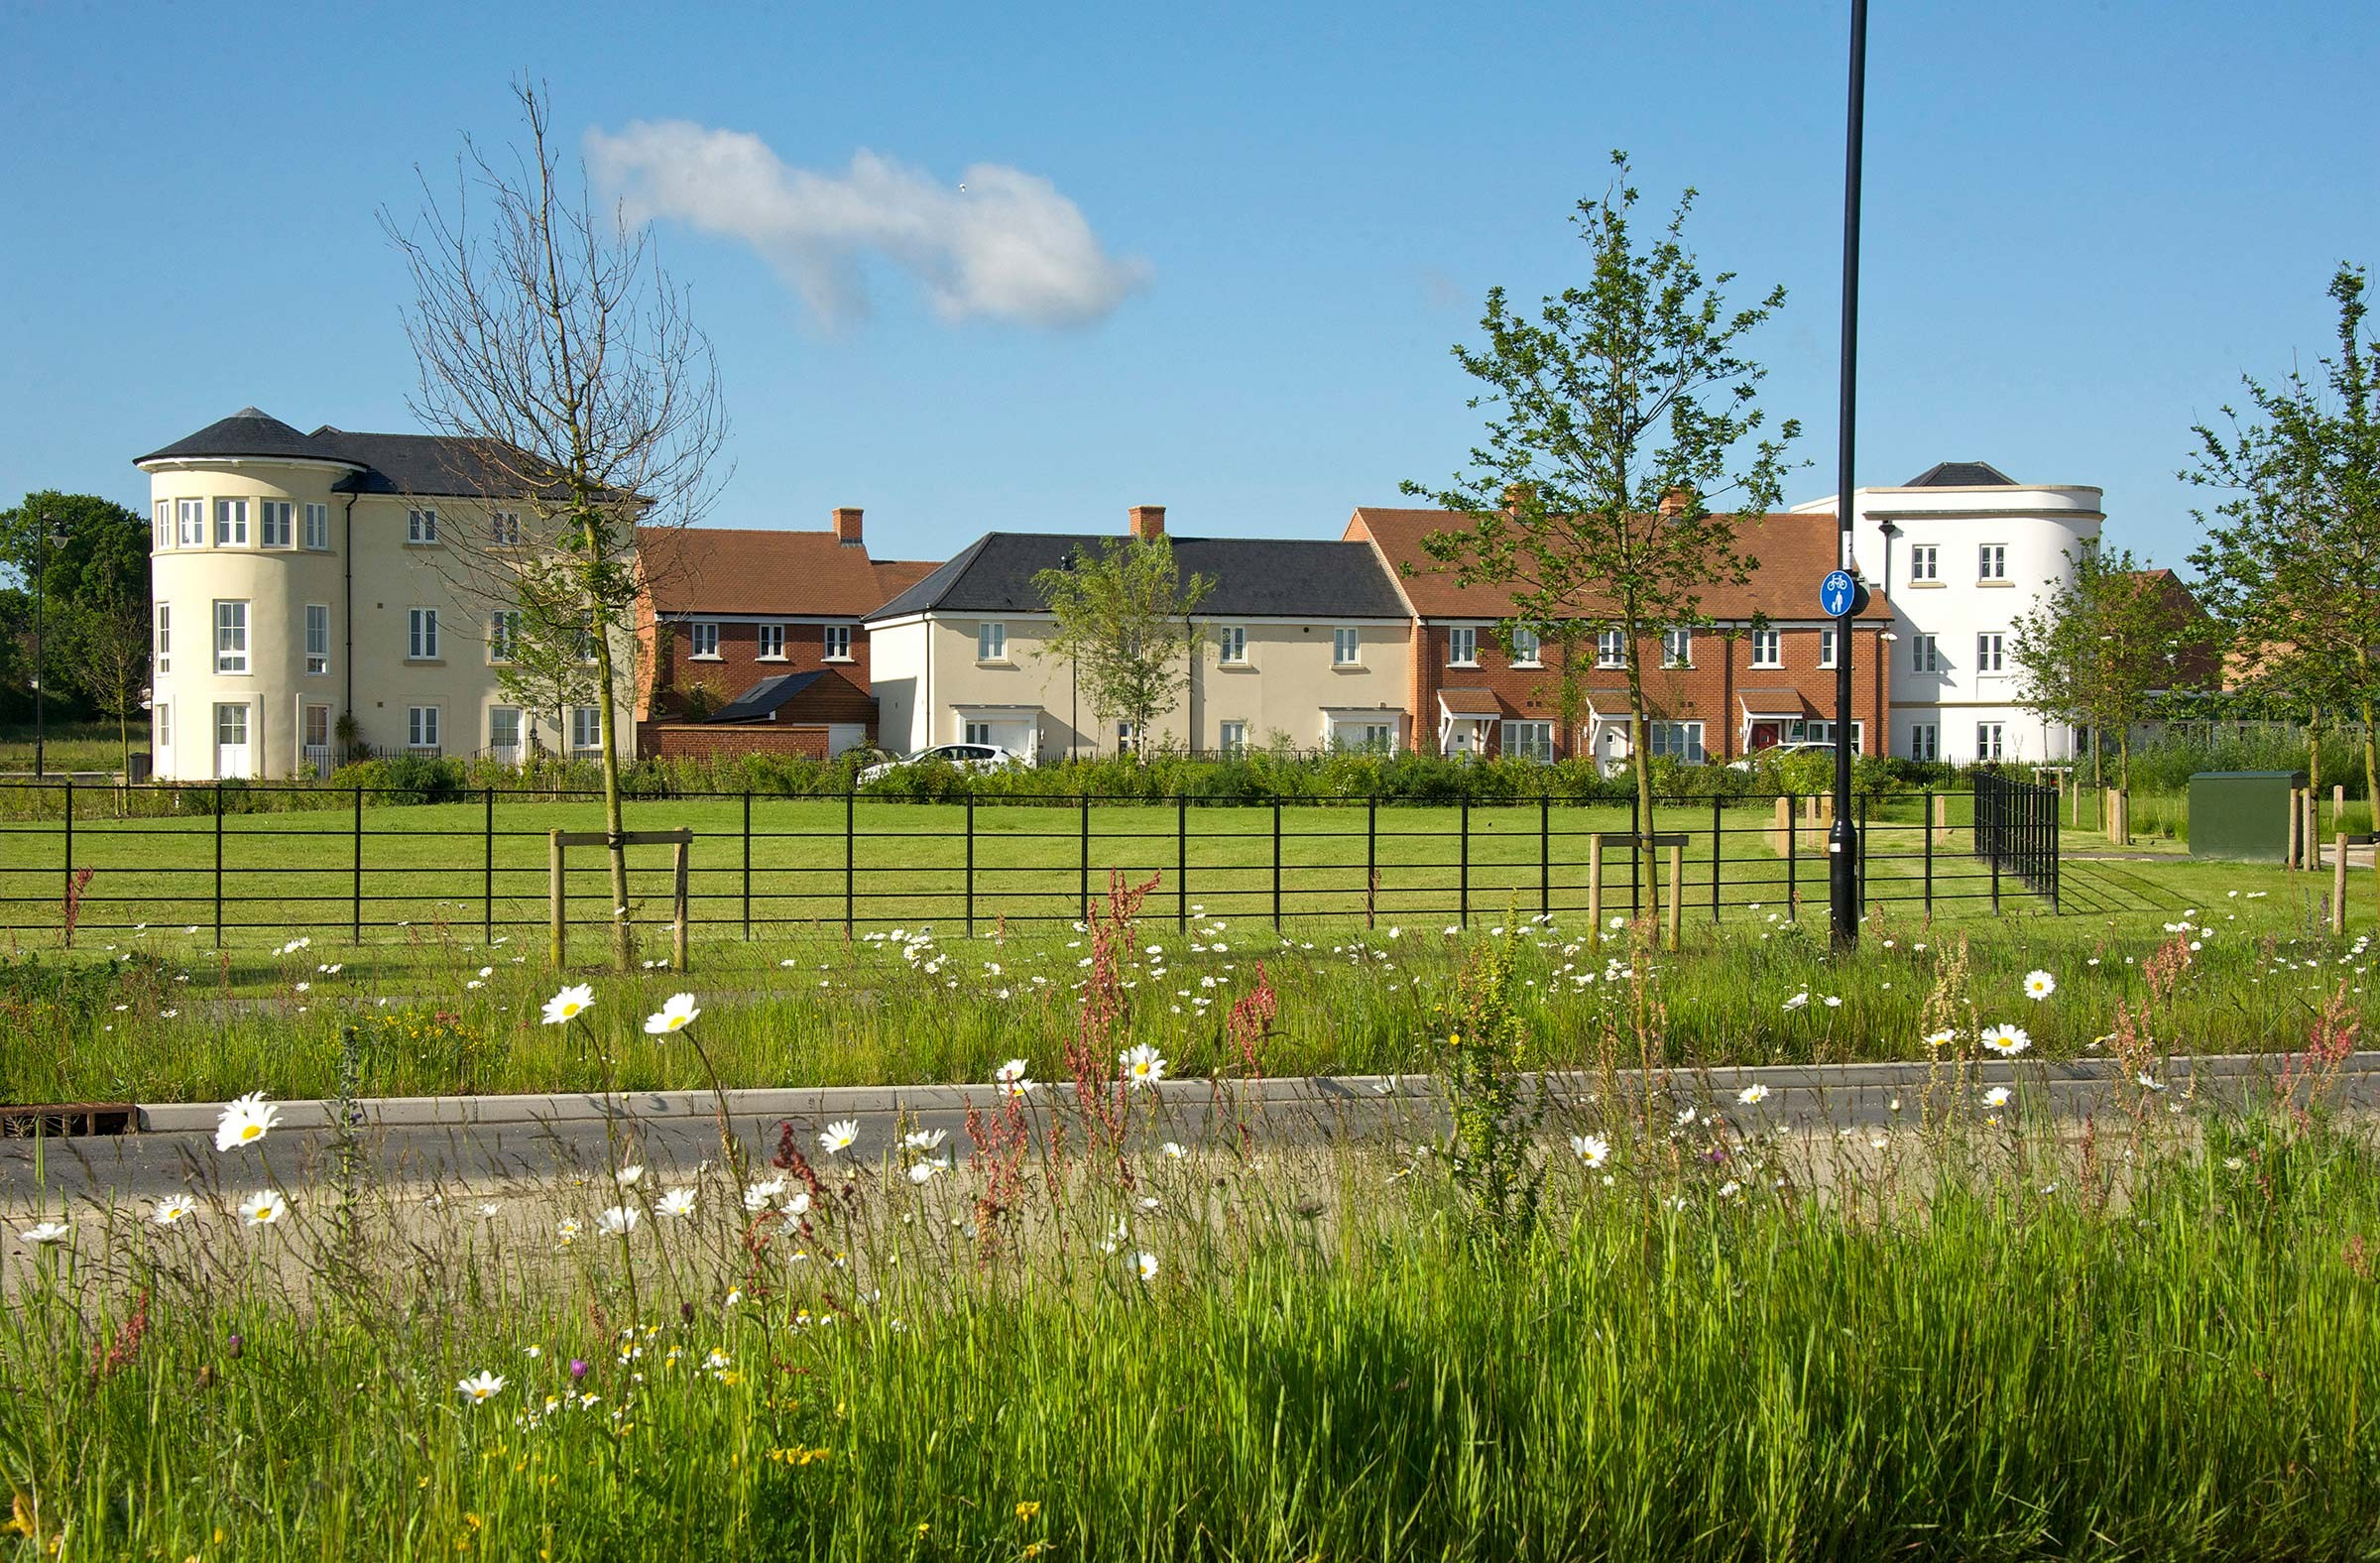 New housing at Berewood, Waterlooville in Hampshire